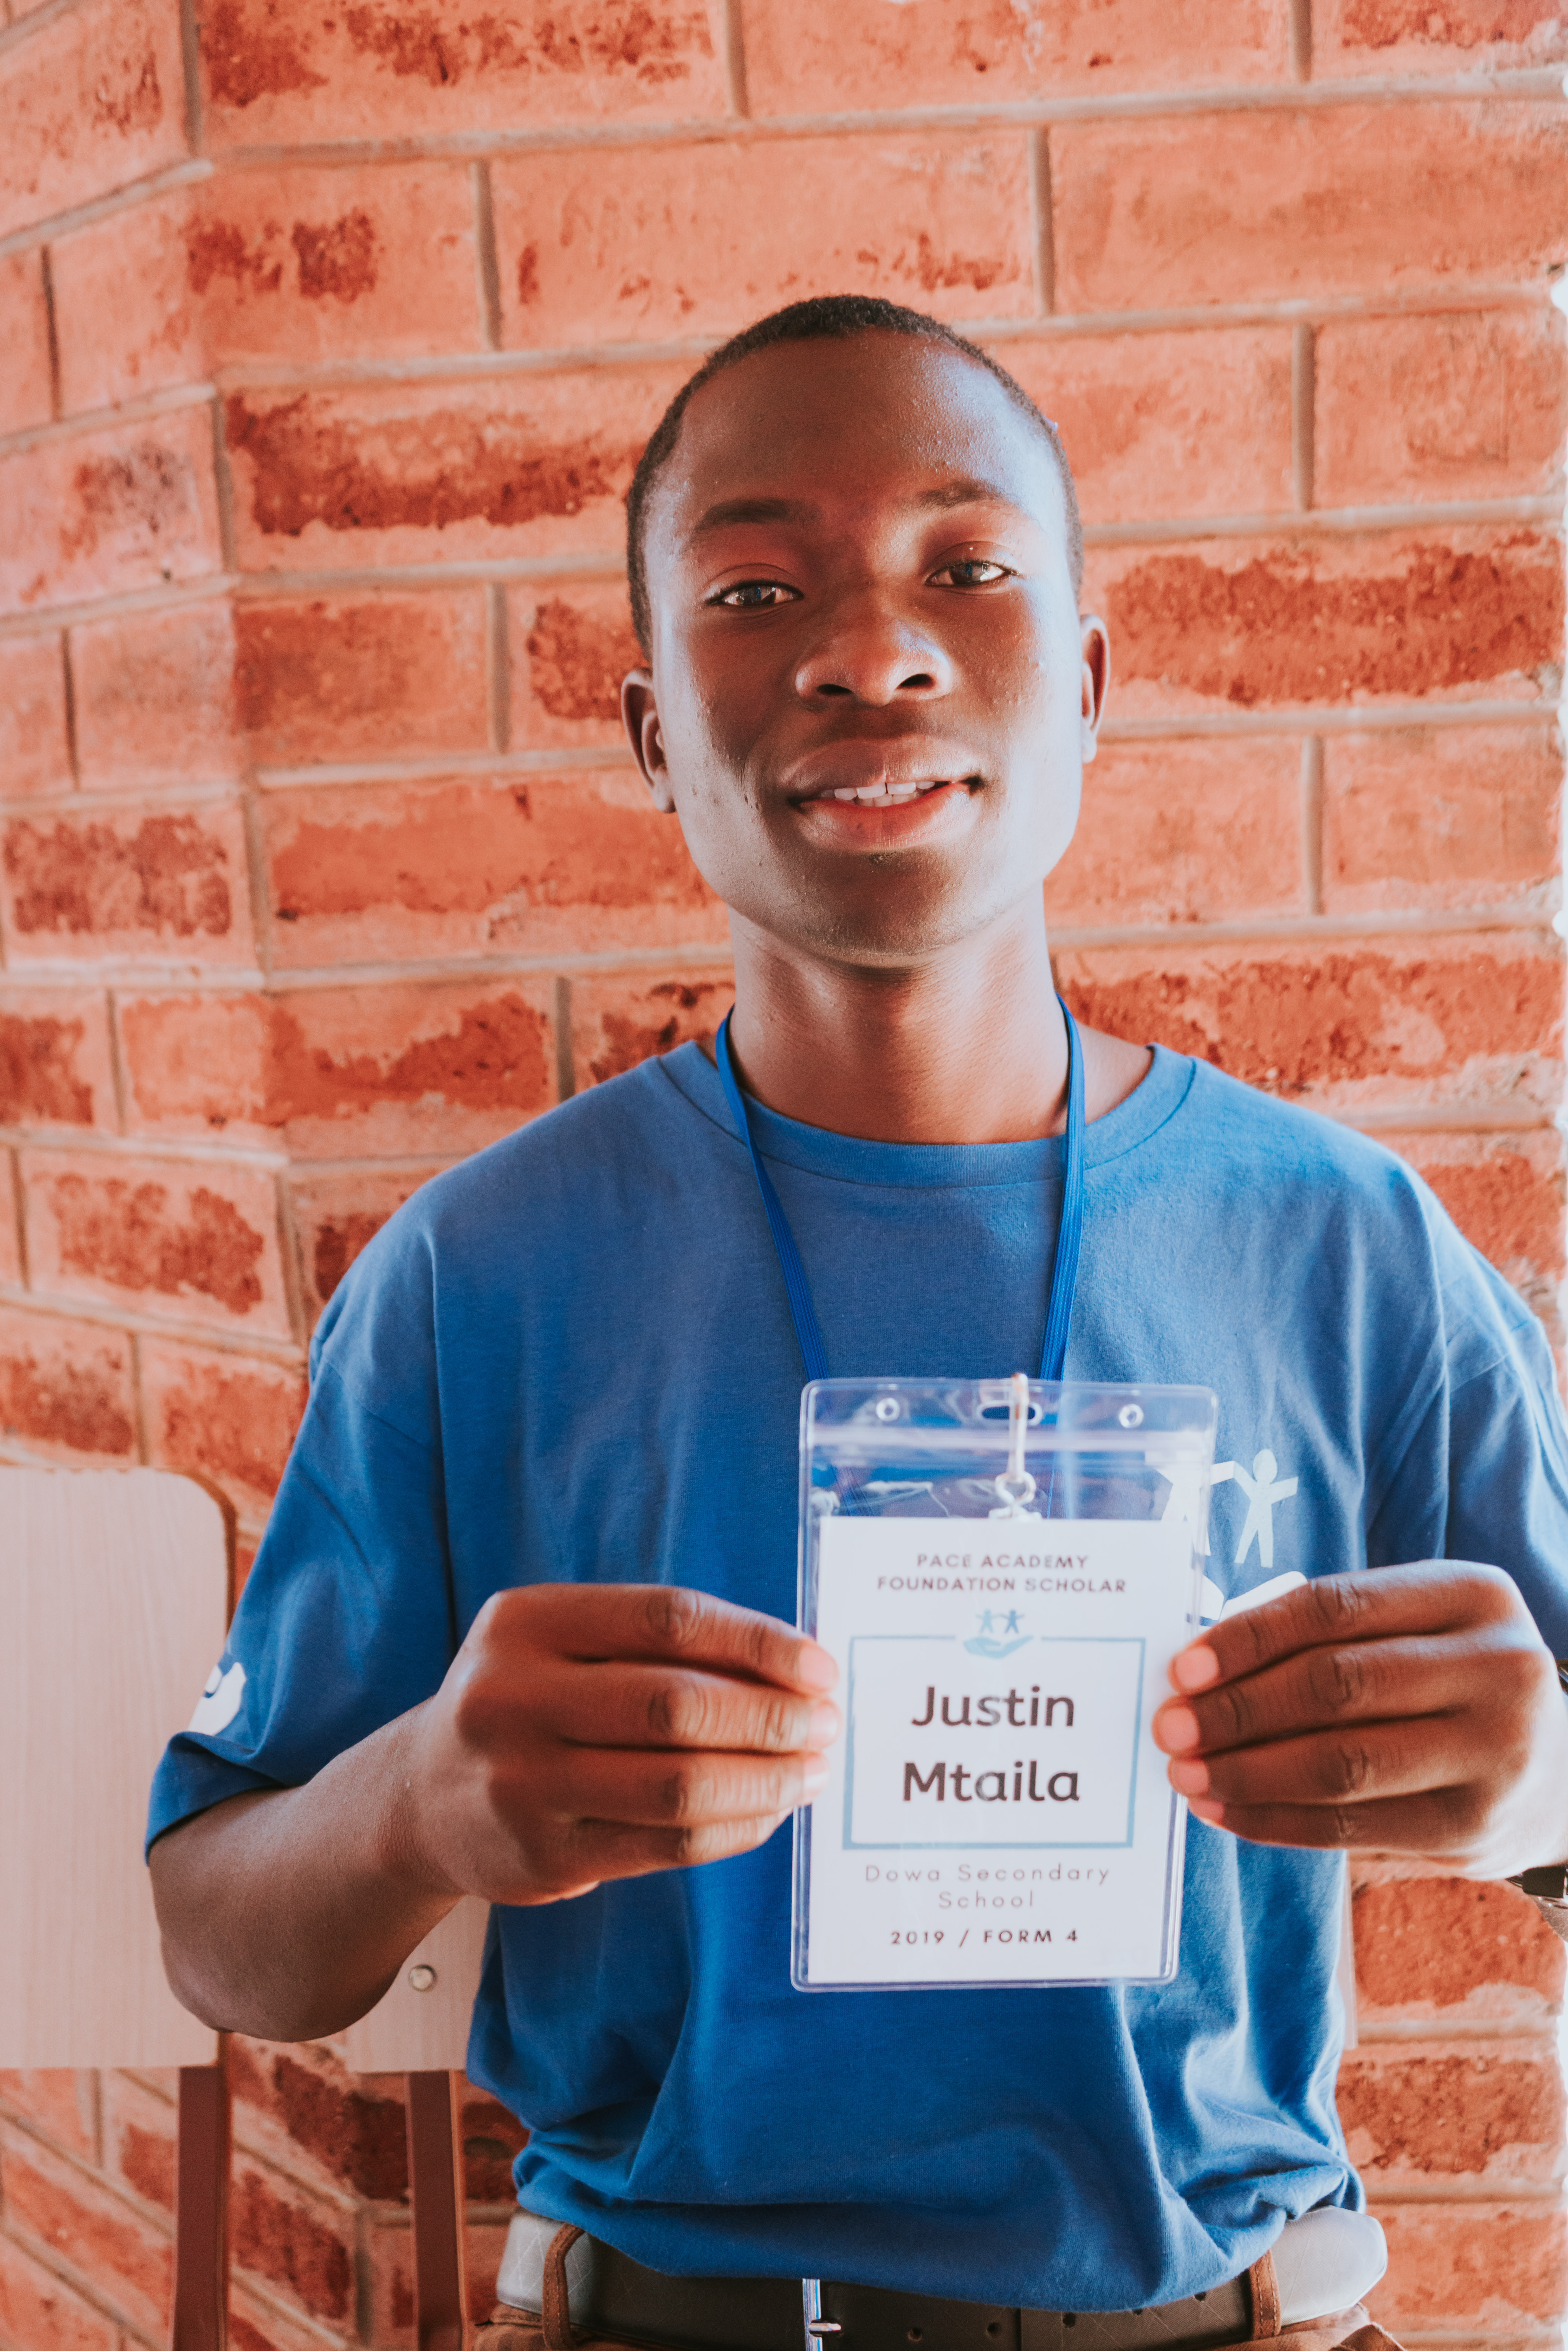 Justin Mtaila (Dowa Secondary School)